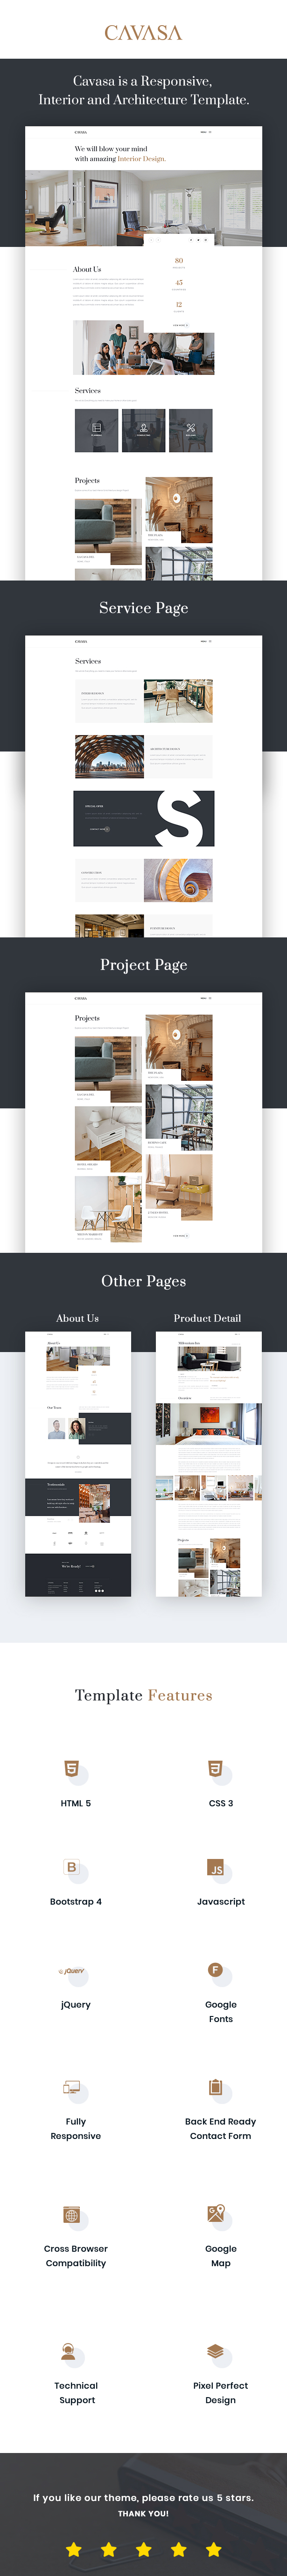 CAVASA - Responsive Interior and Architecture HTML Template - 1